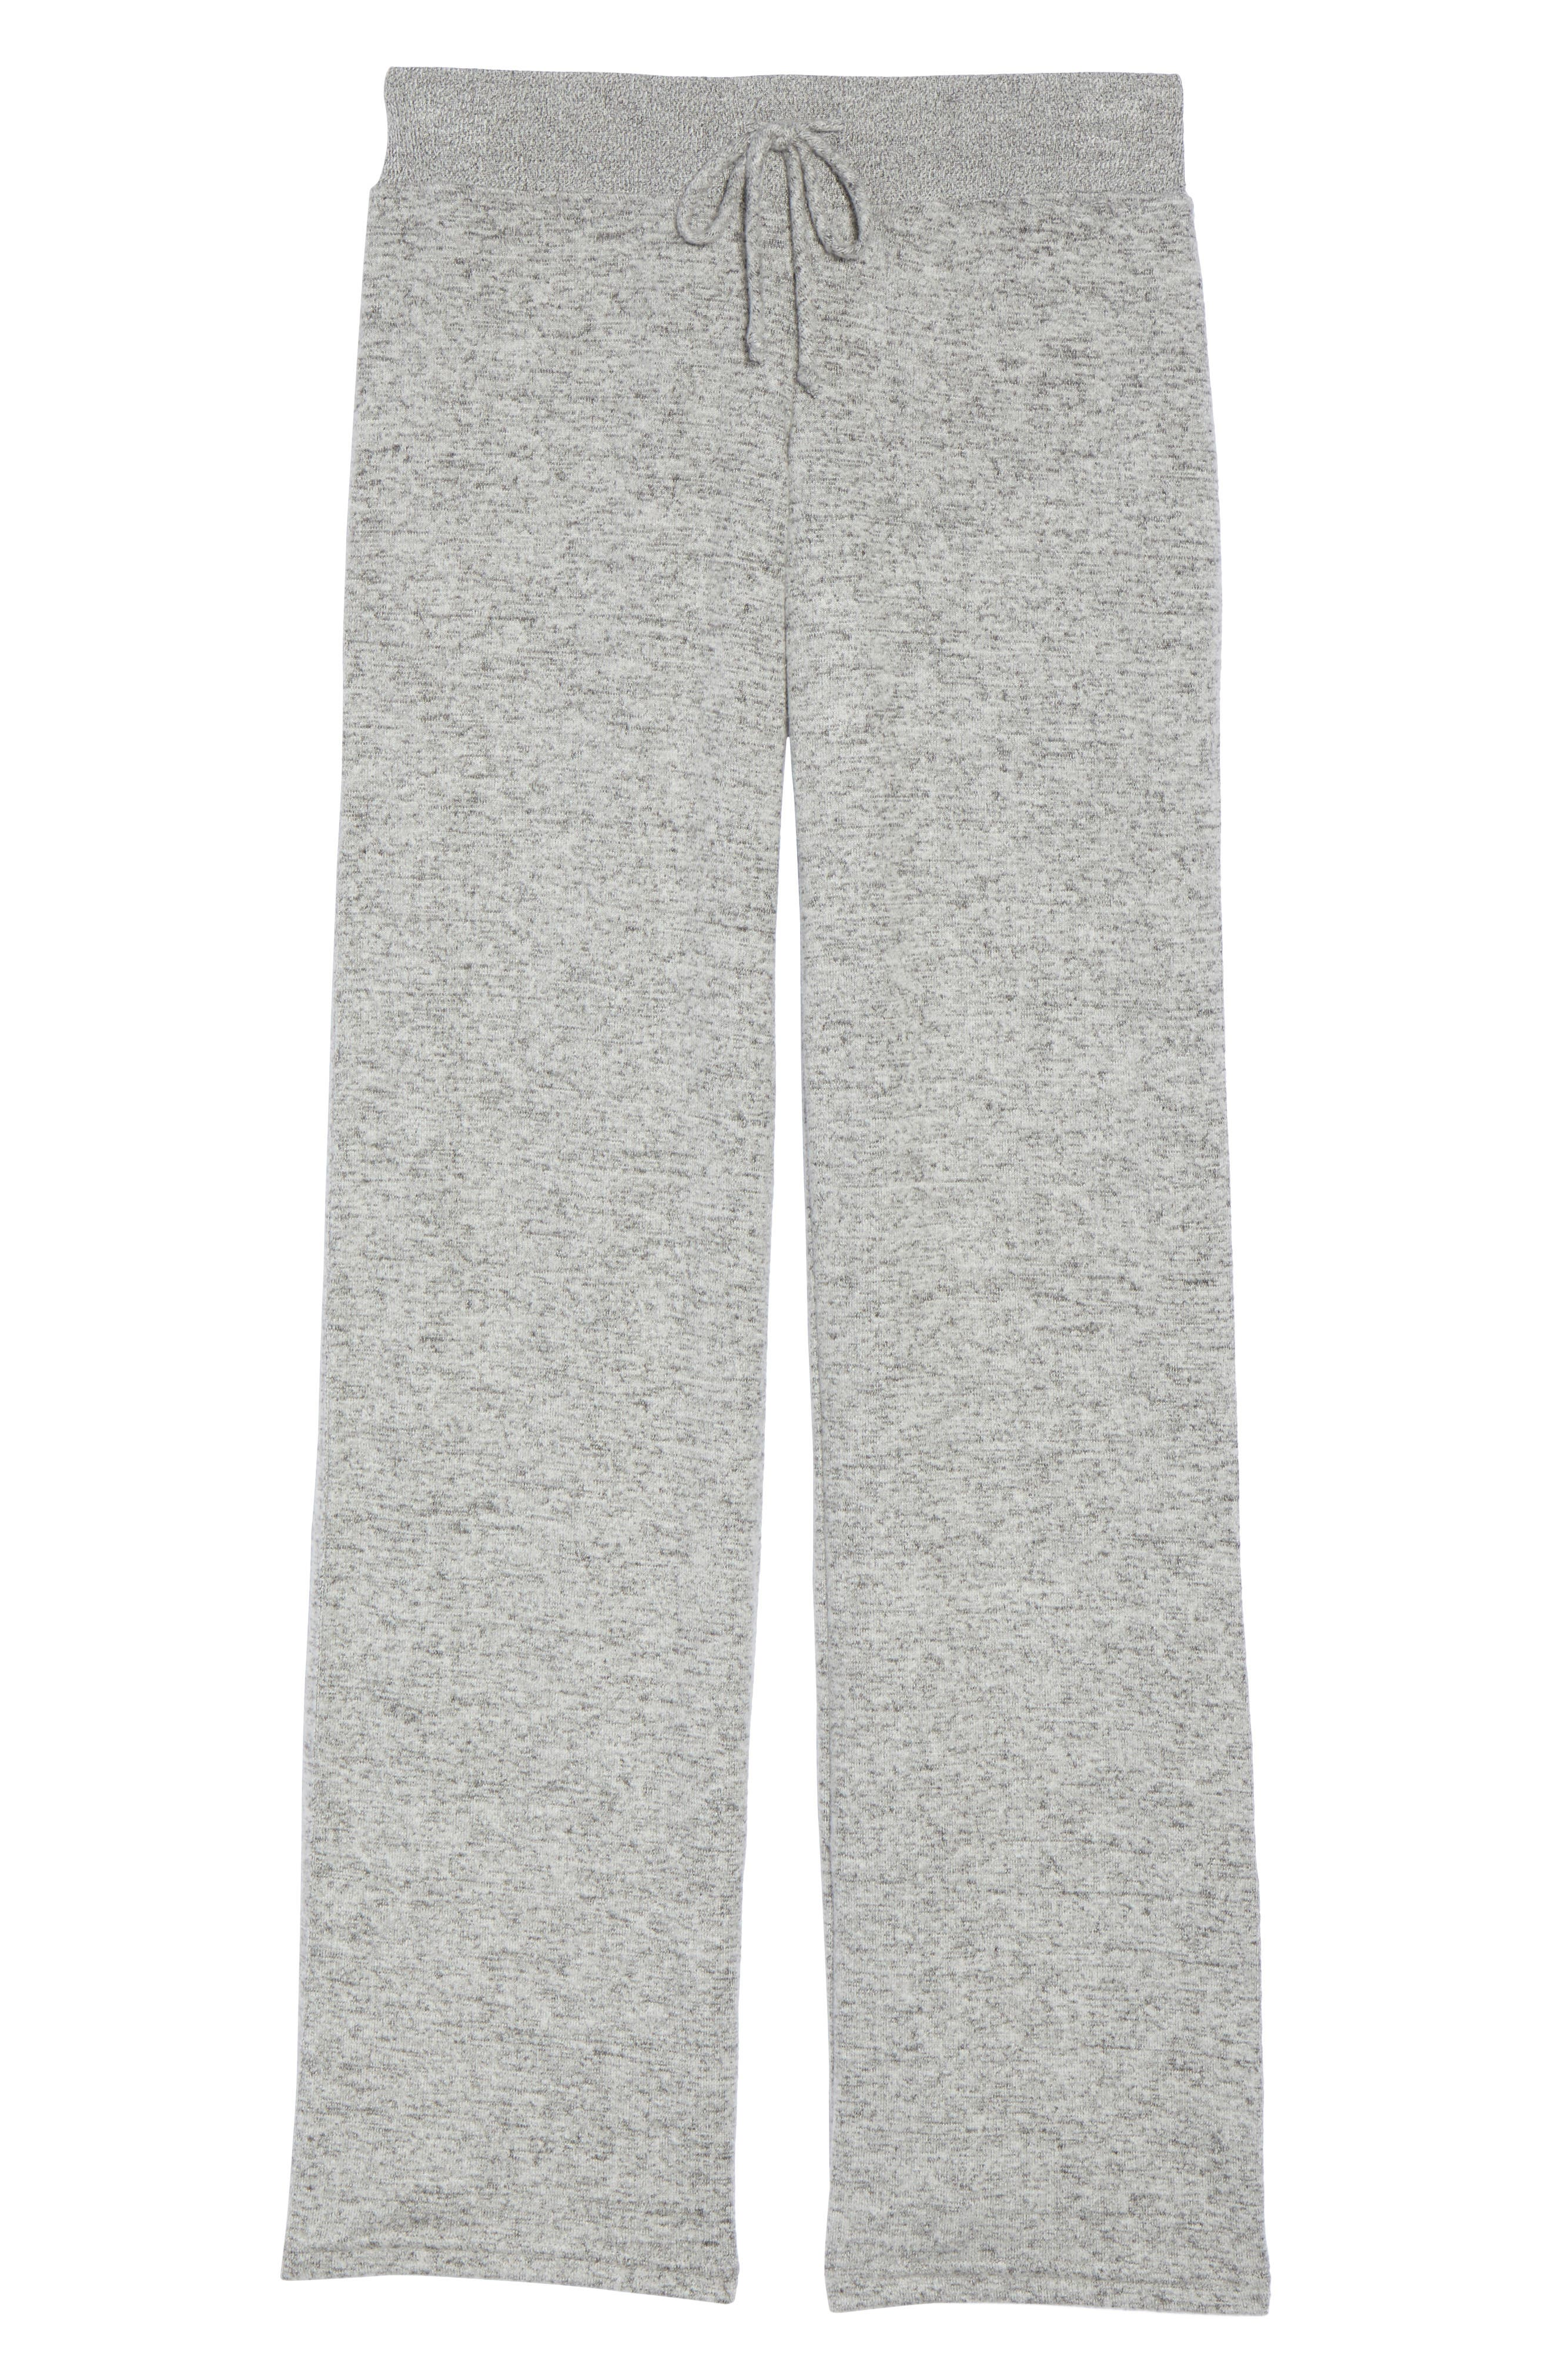 Best Boyfriend Brushed Hacci Lounge Pants,                             Alternate thumbnail 7, color,                             Grey Flannel Marl